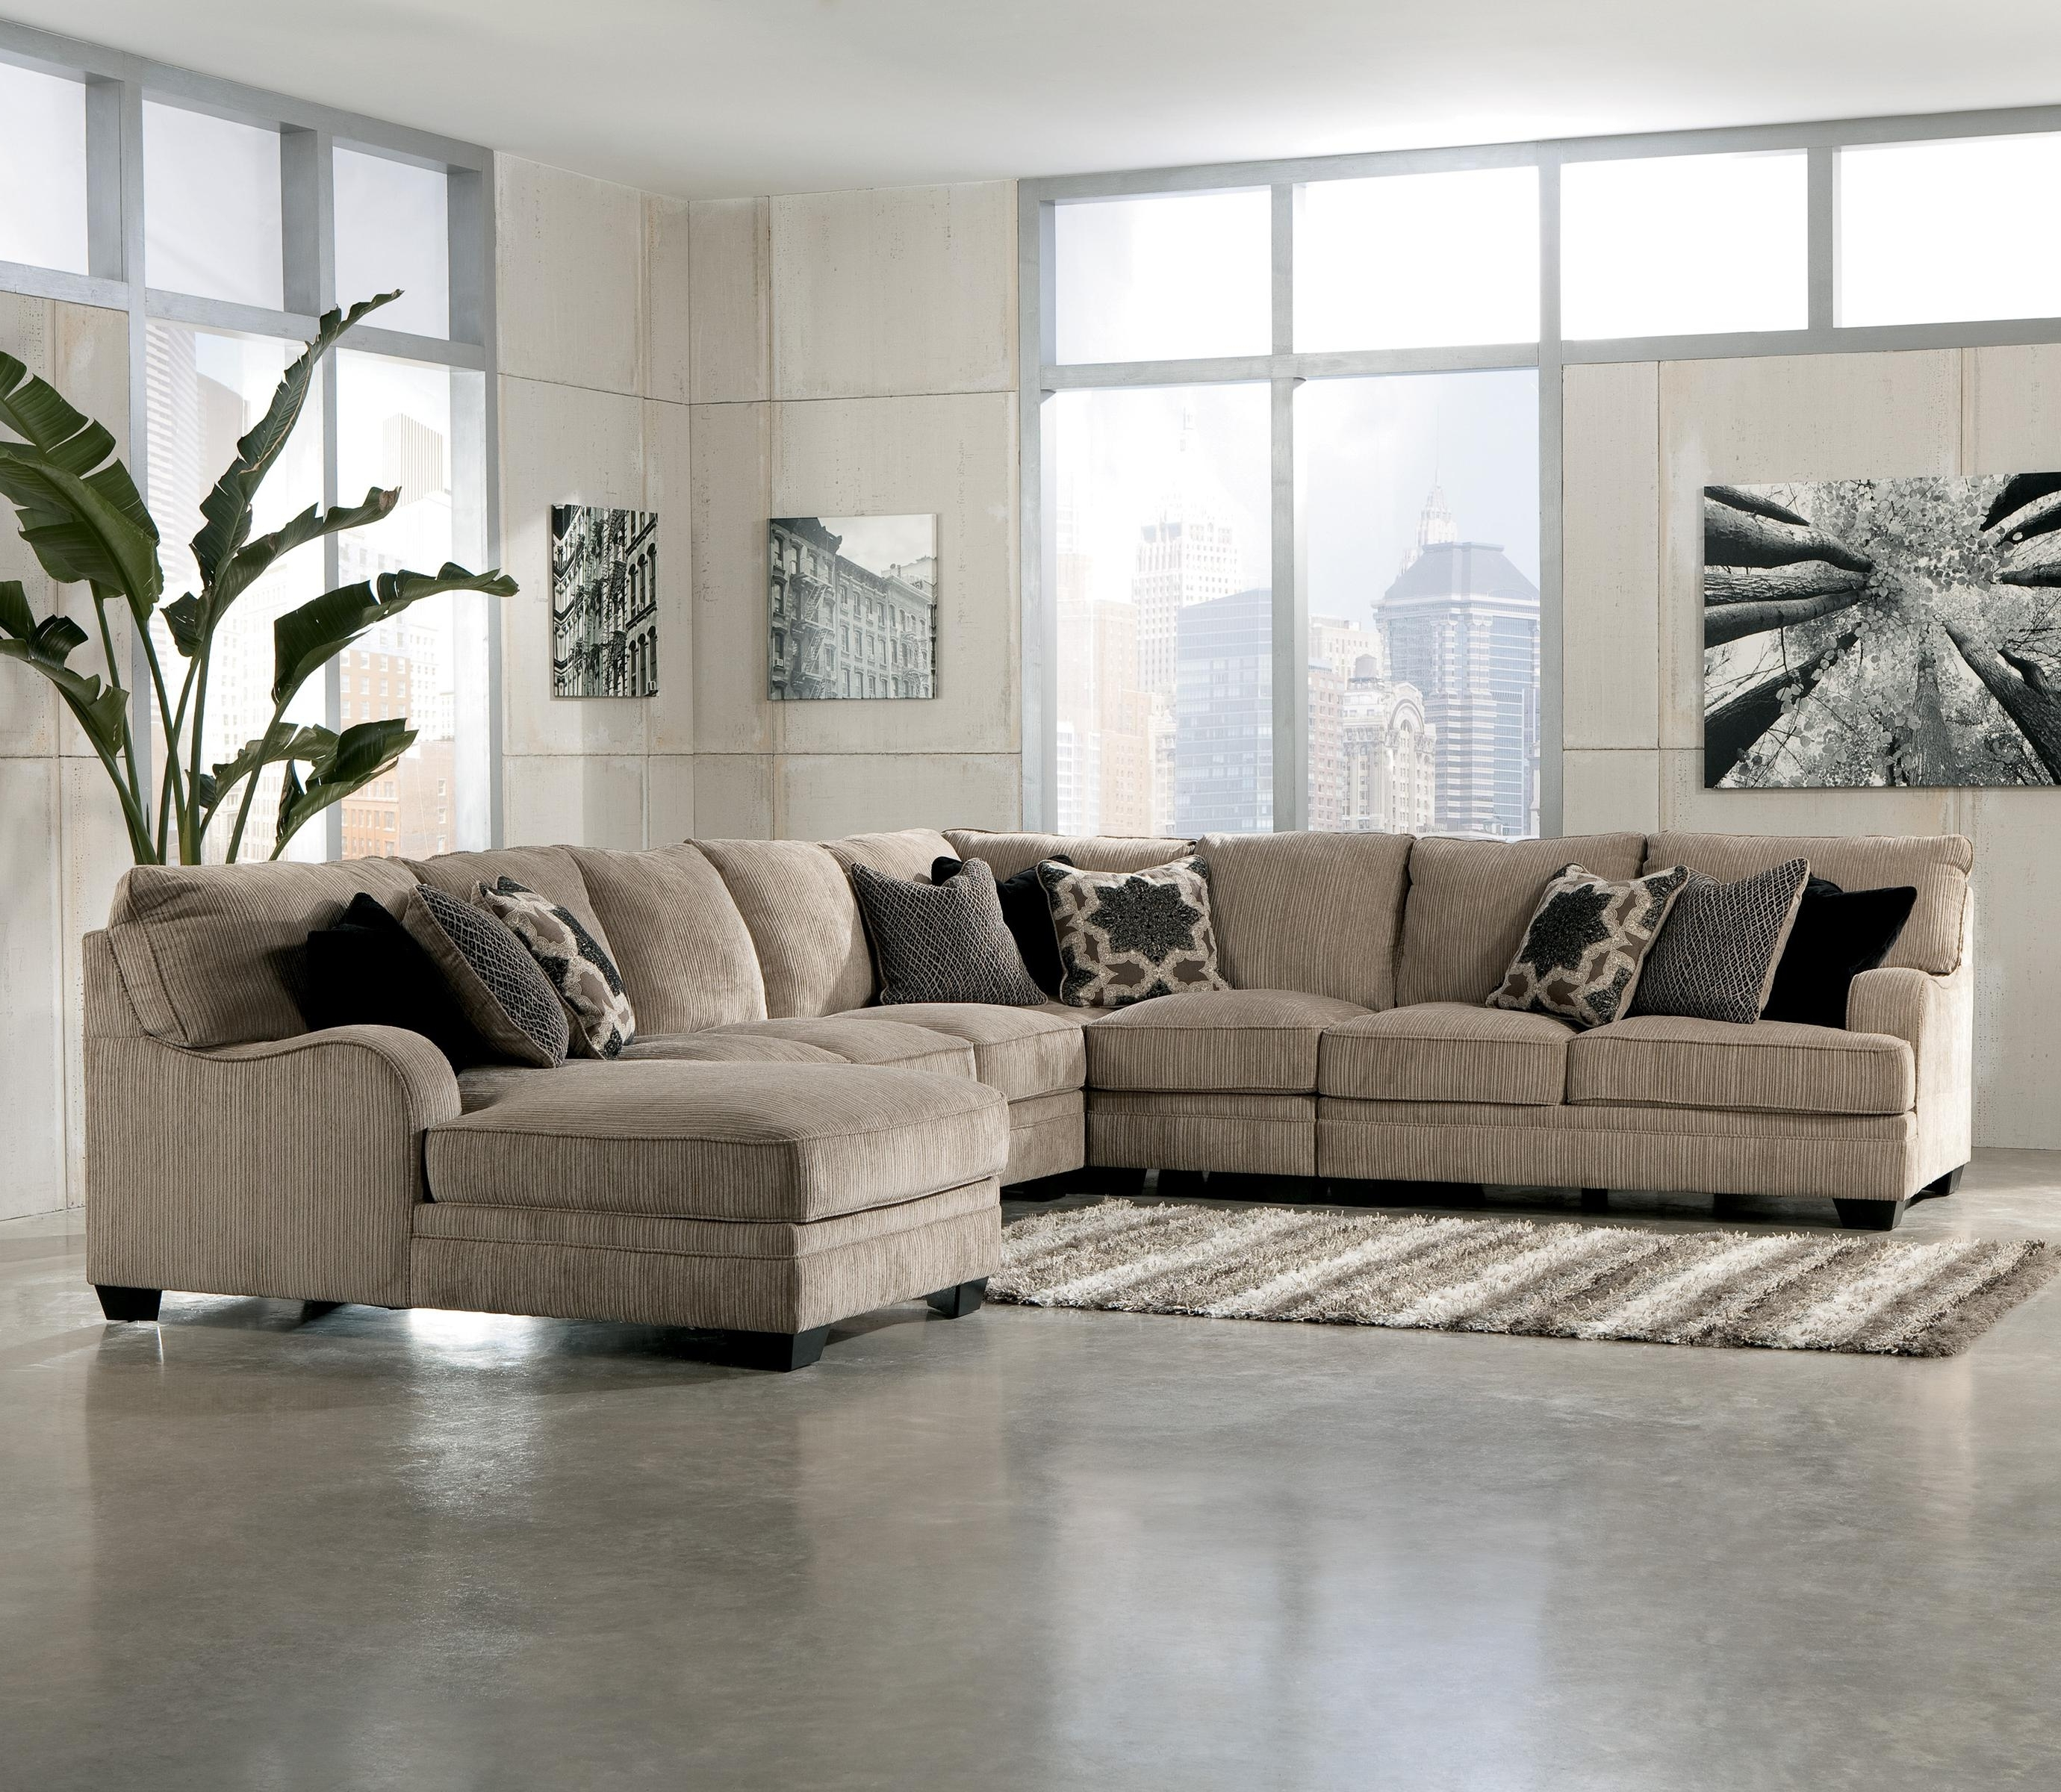 Signature Designashley Katisha – Platinum 5 Piece Sectional With Regard To Most Recently Released Hattiesburg Ms Sectional Sofas (View 17 of 20)